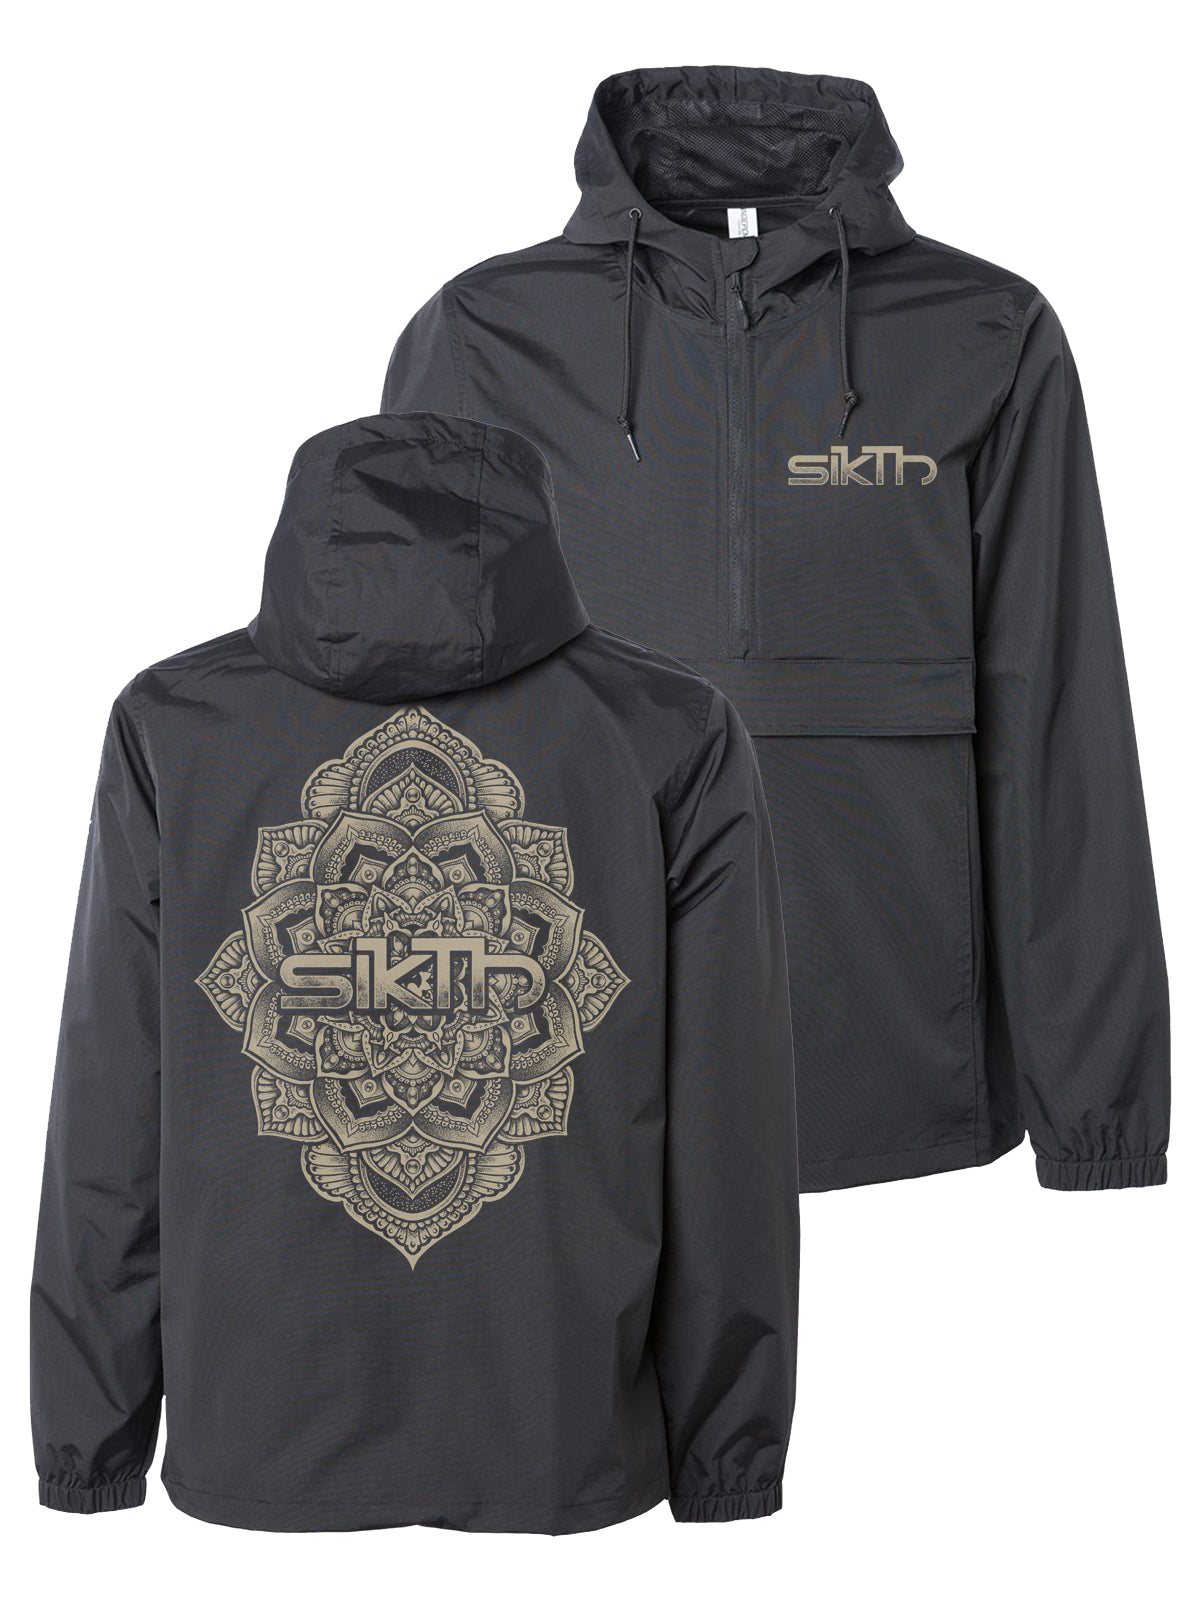 SikTh - Mandala Windbreaker - Merch Limited